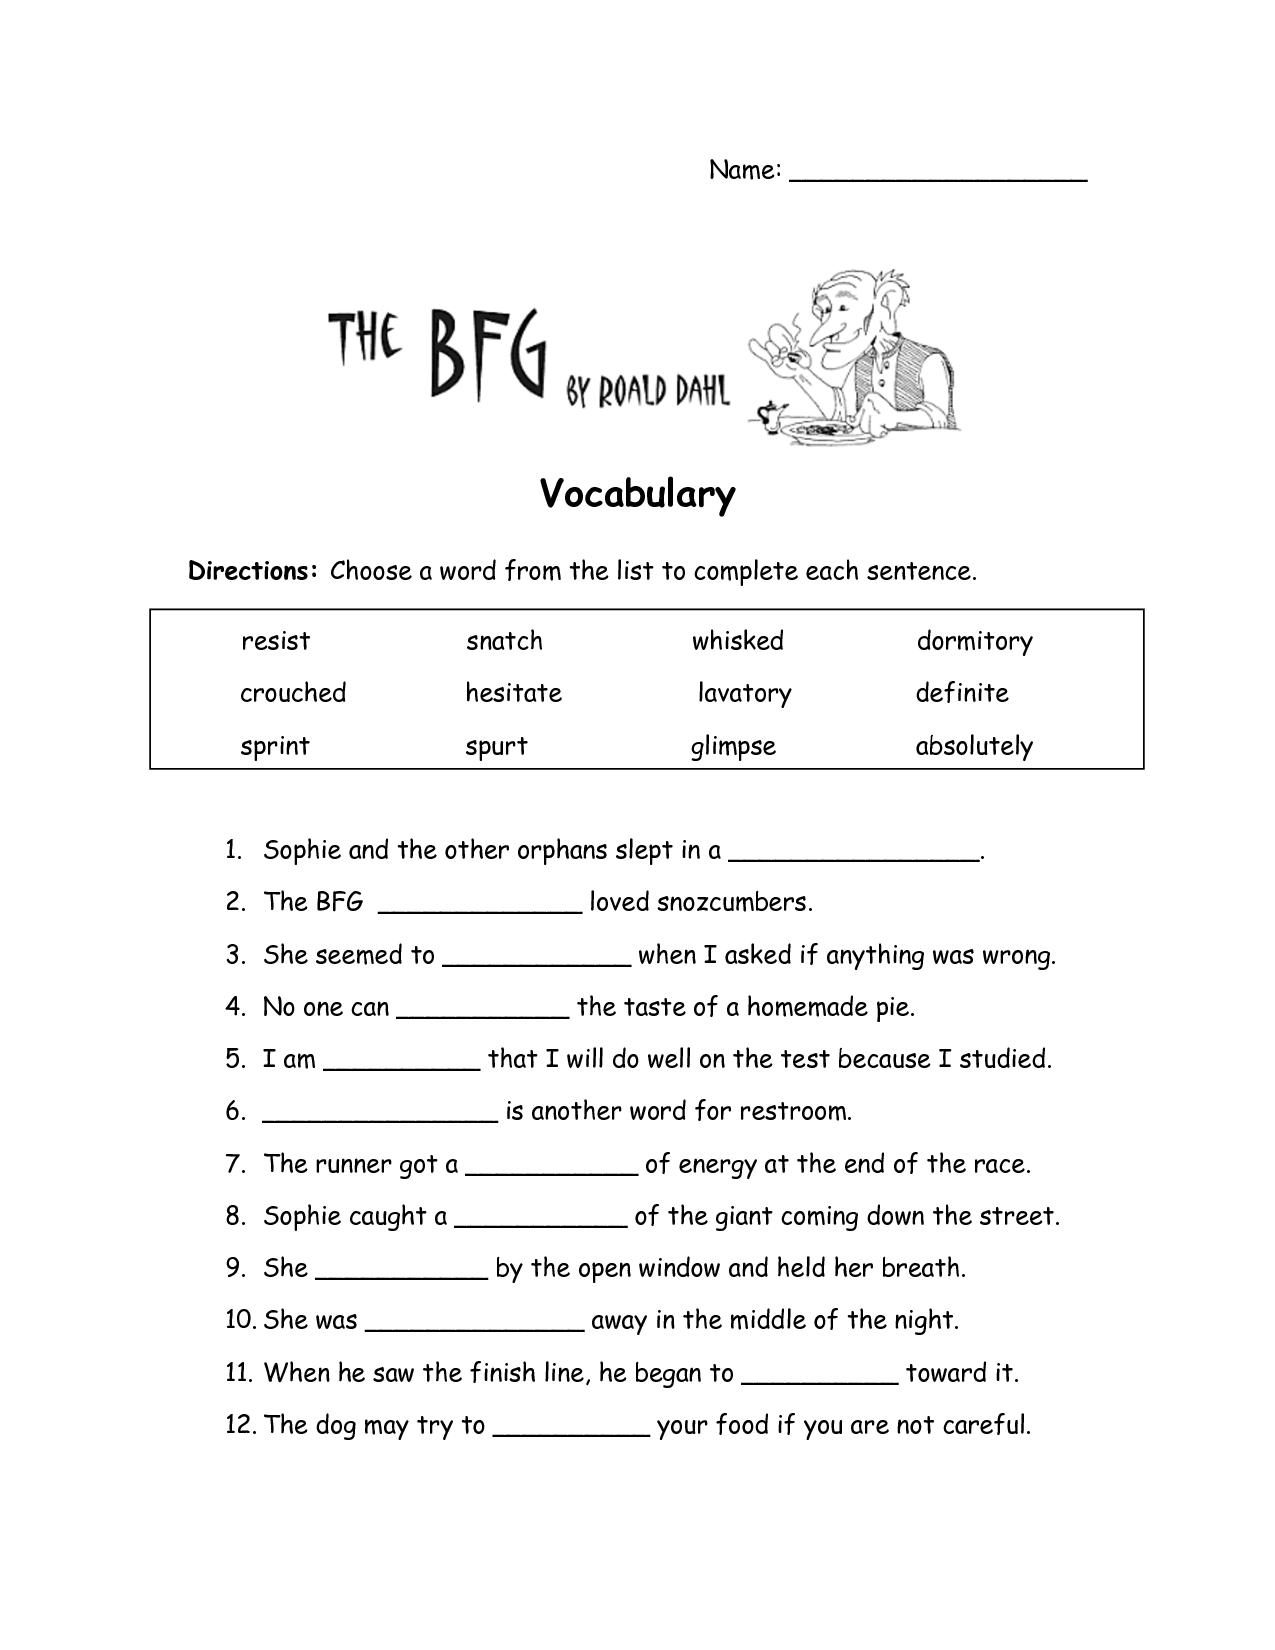 The BFG Worksheets The BFG Vocabulary Worksheet – Vocabulary Worksheet